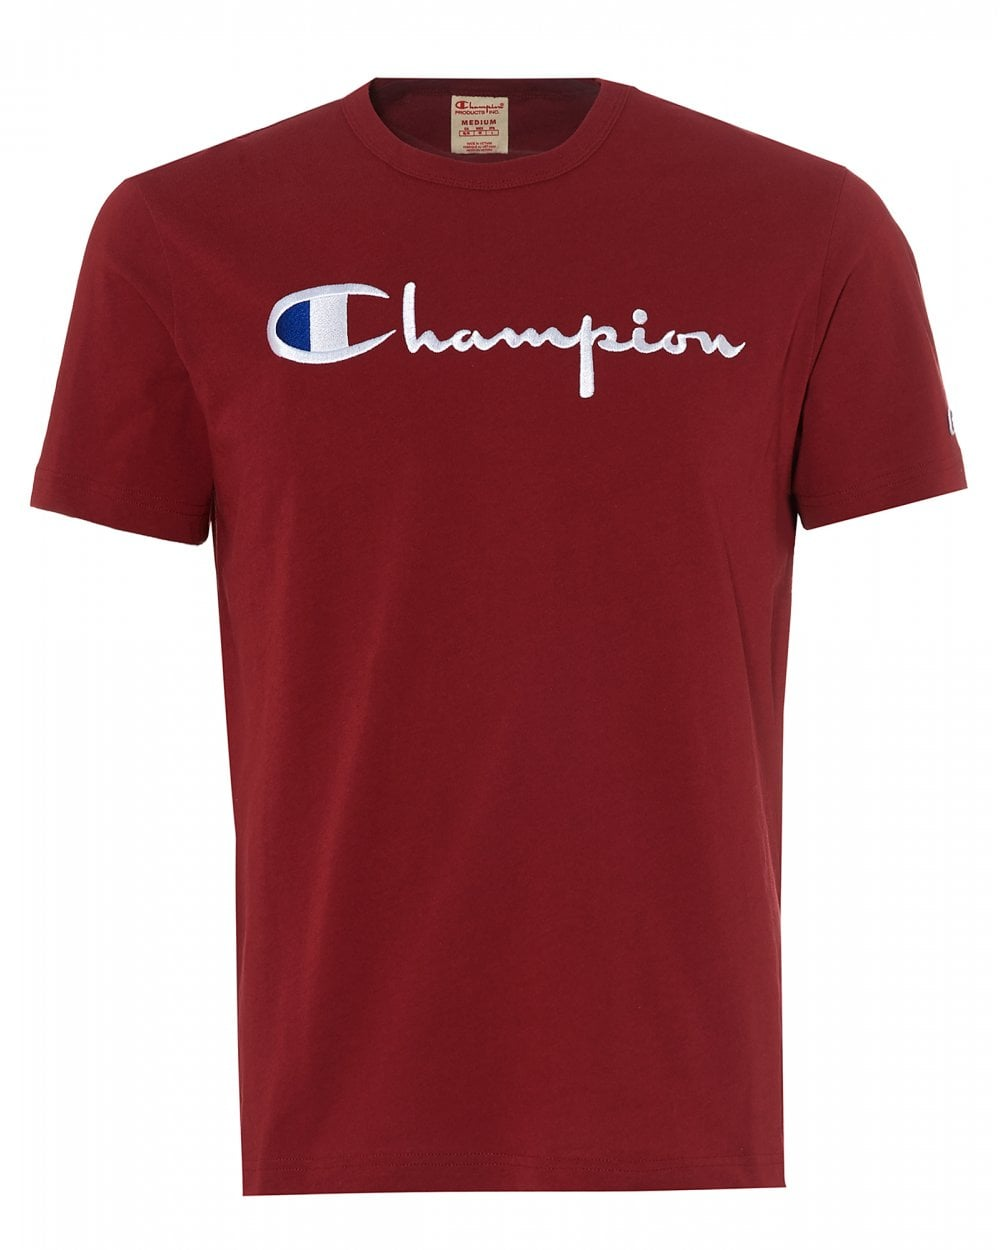 I Build Champions T Shirt: Champion Mens Large Script T-Shirt, Burgundy Red Crew Neck Tee